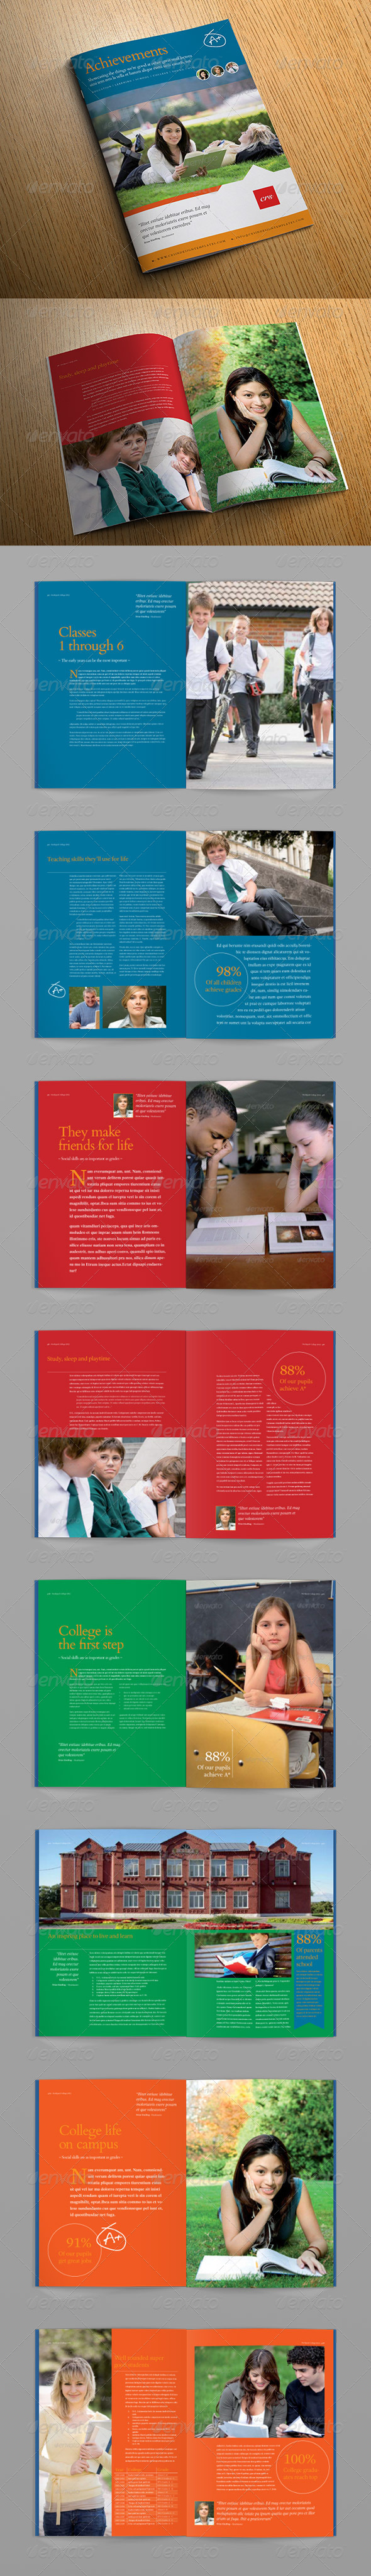 Achievements Brochure - Brochures Print Templates